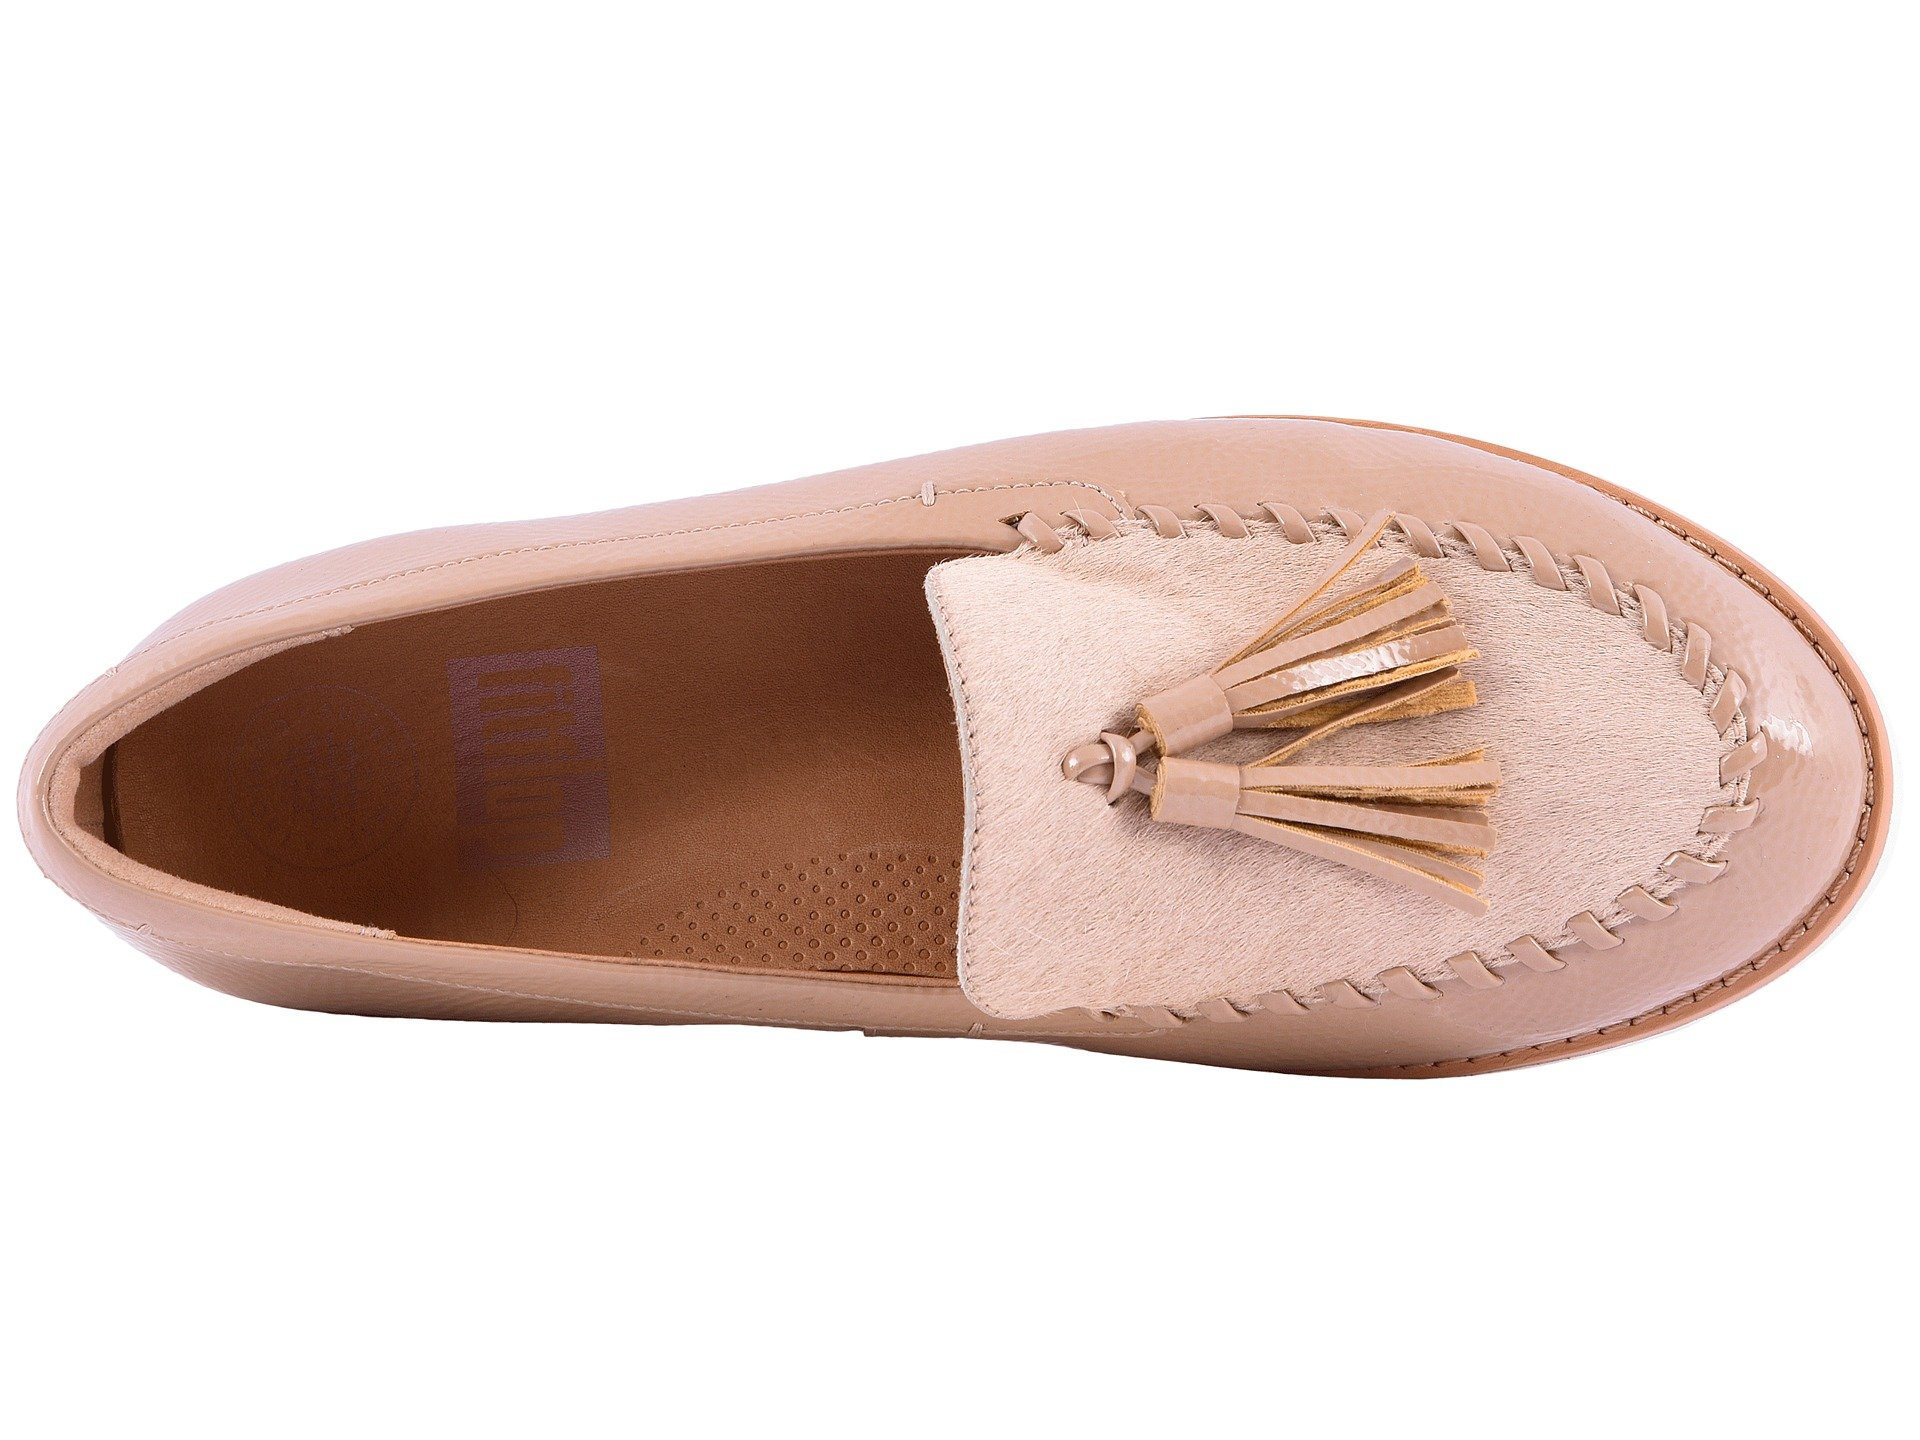 Petrina Pony Taupe Moccasin Fitflop Faux daSqd1